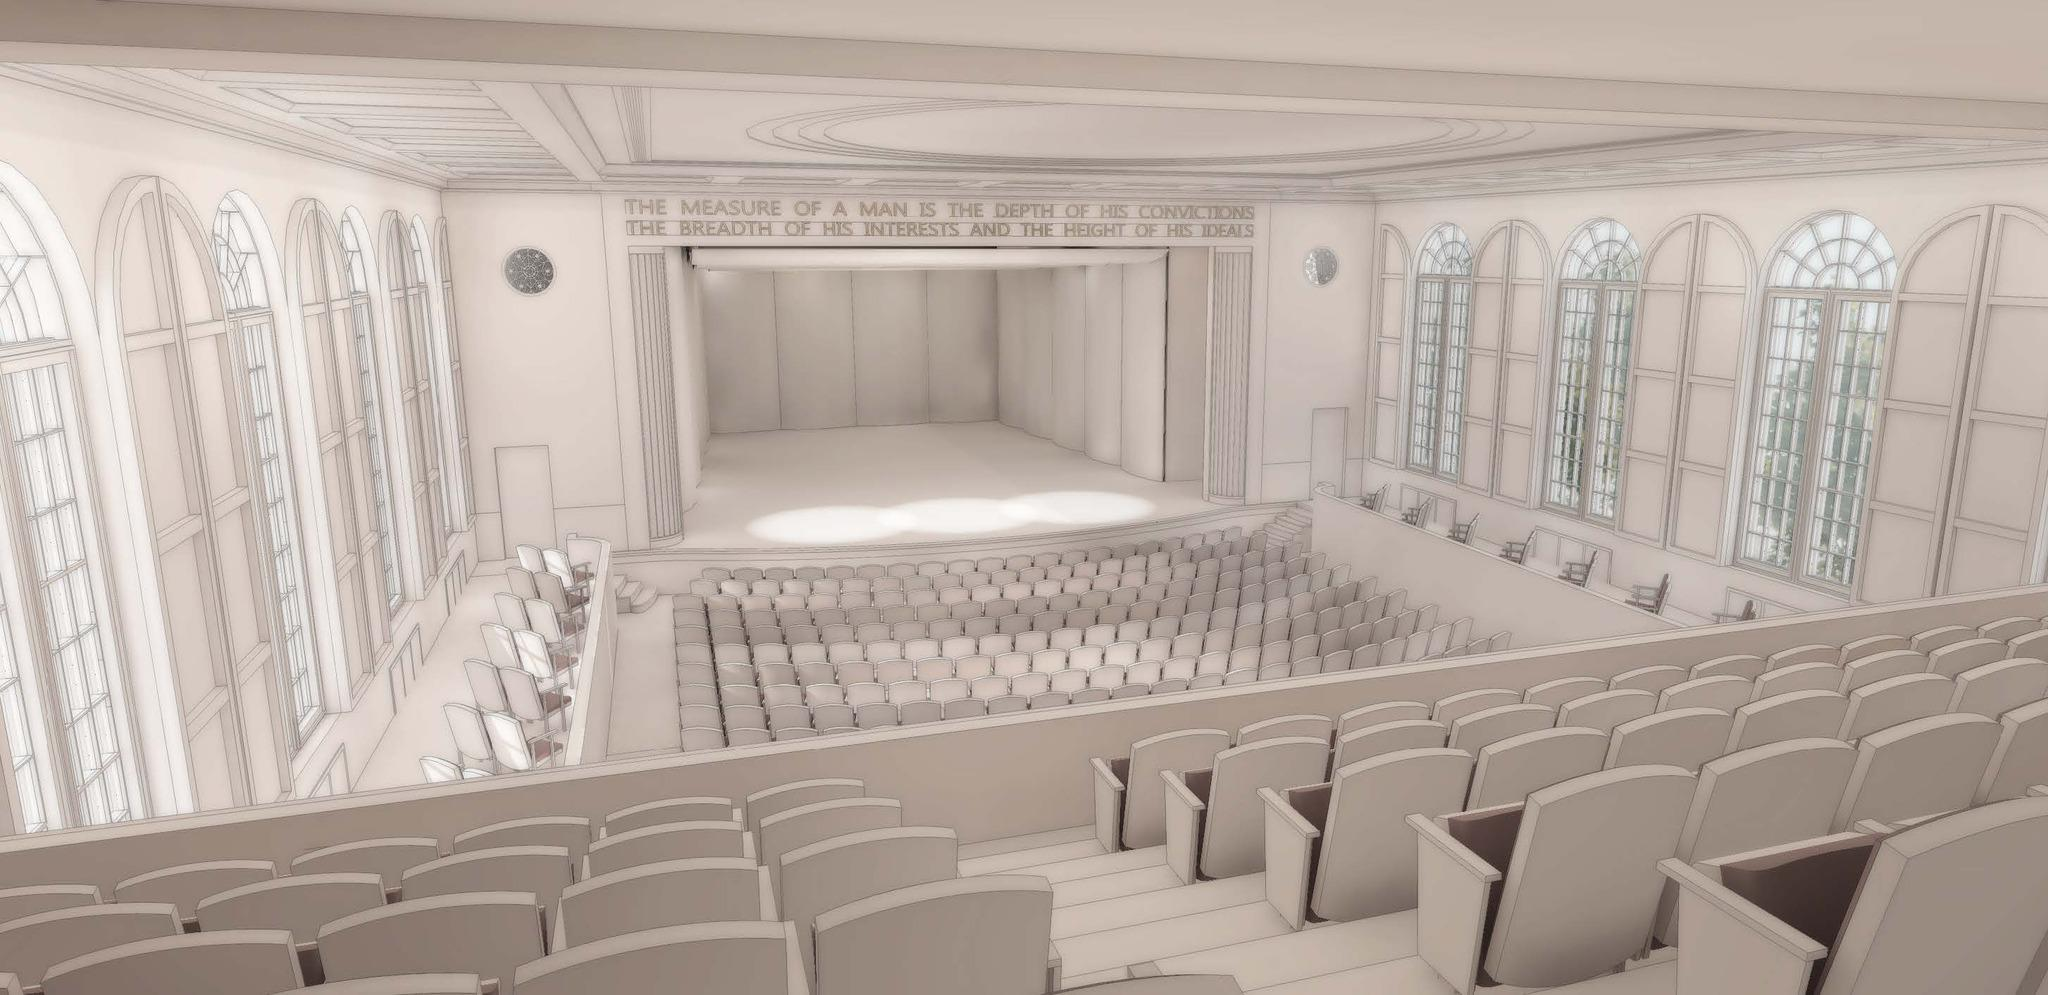 The Maryland Hall for the Creative Arts in Annapolis will undergo an $18 million renovation project to modernize and improve its performing arts wing. The first phase will take place beginning in June and will include the renovation of the theaters orchestra level seating and upgrades to the stage area.